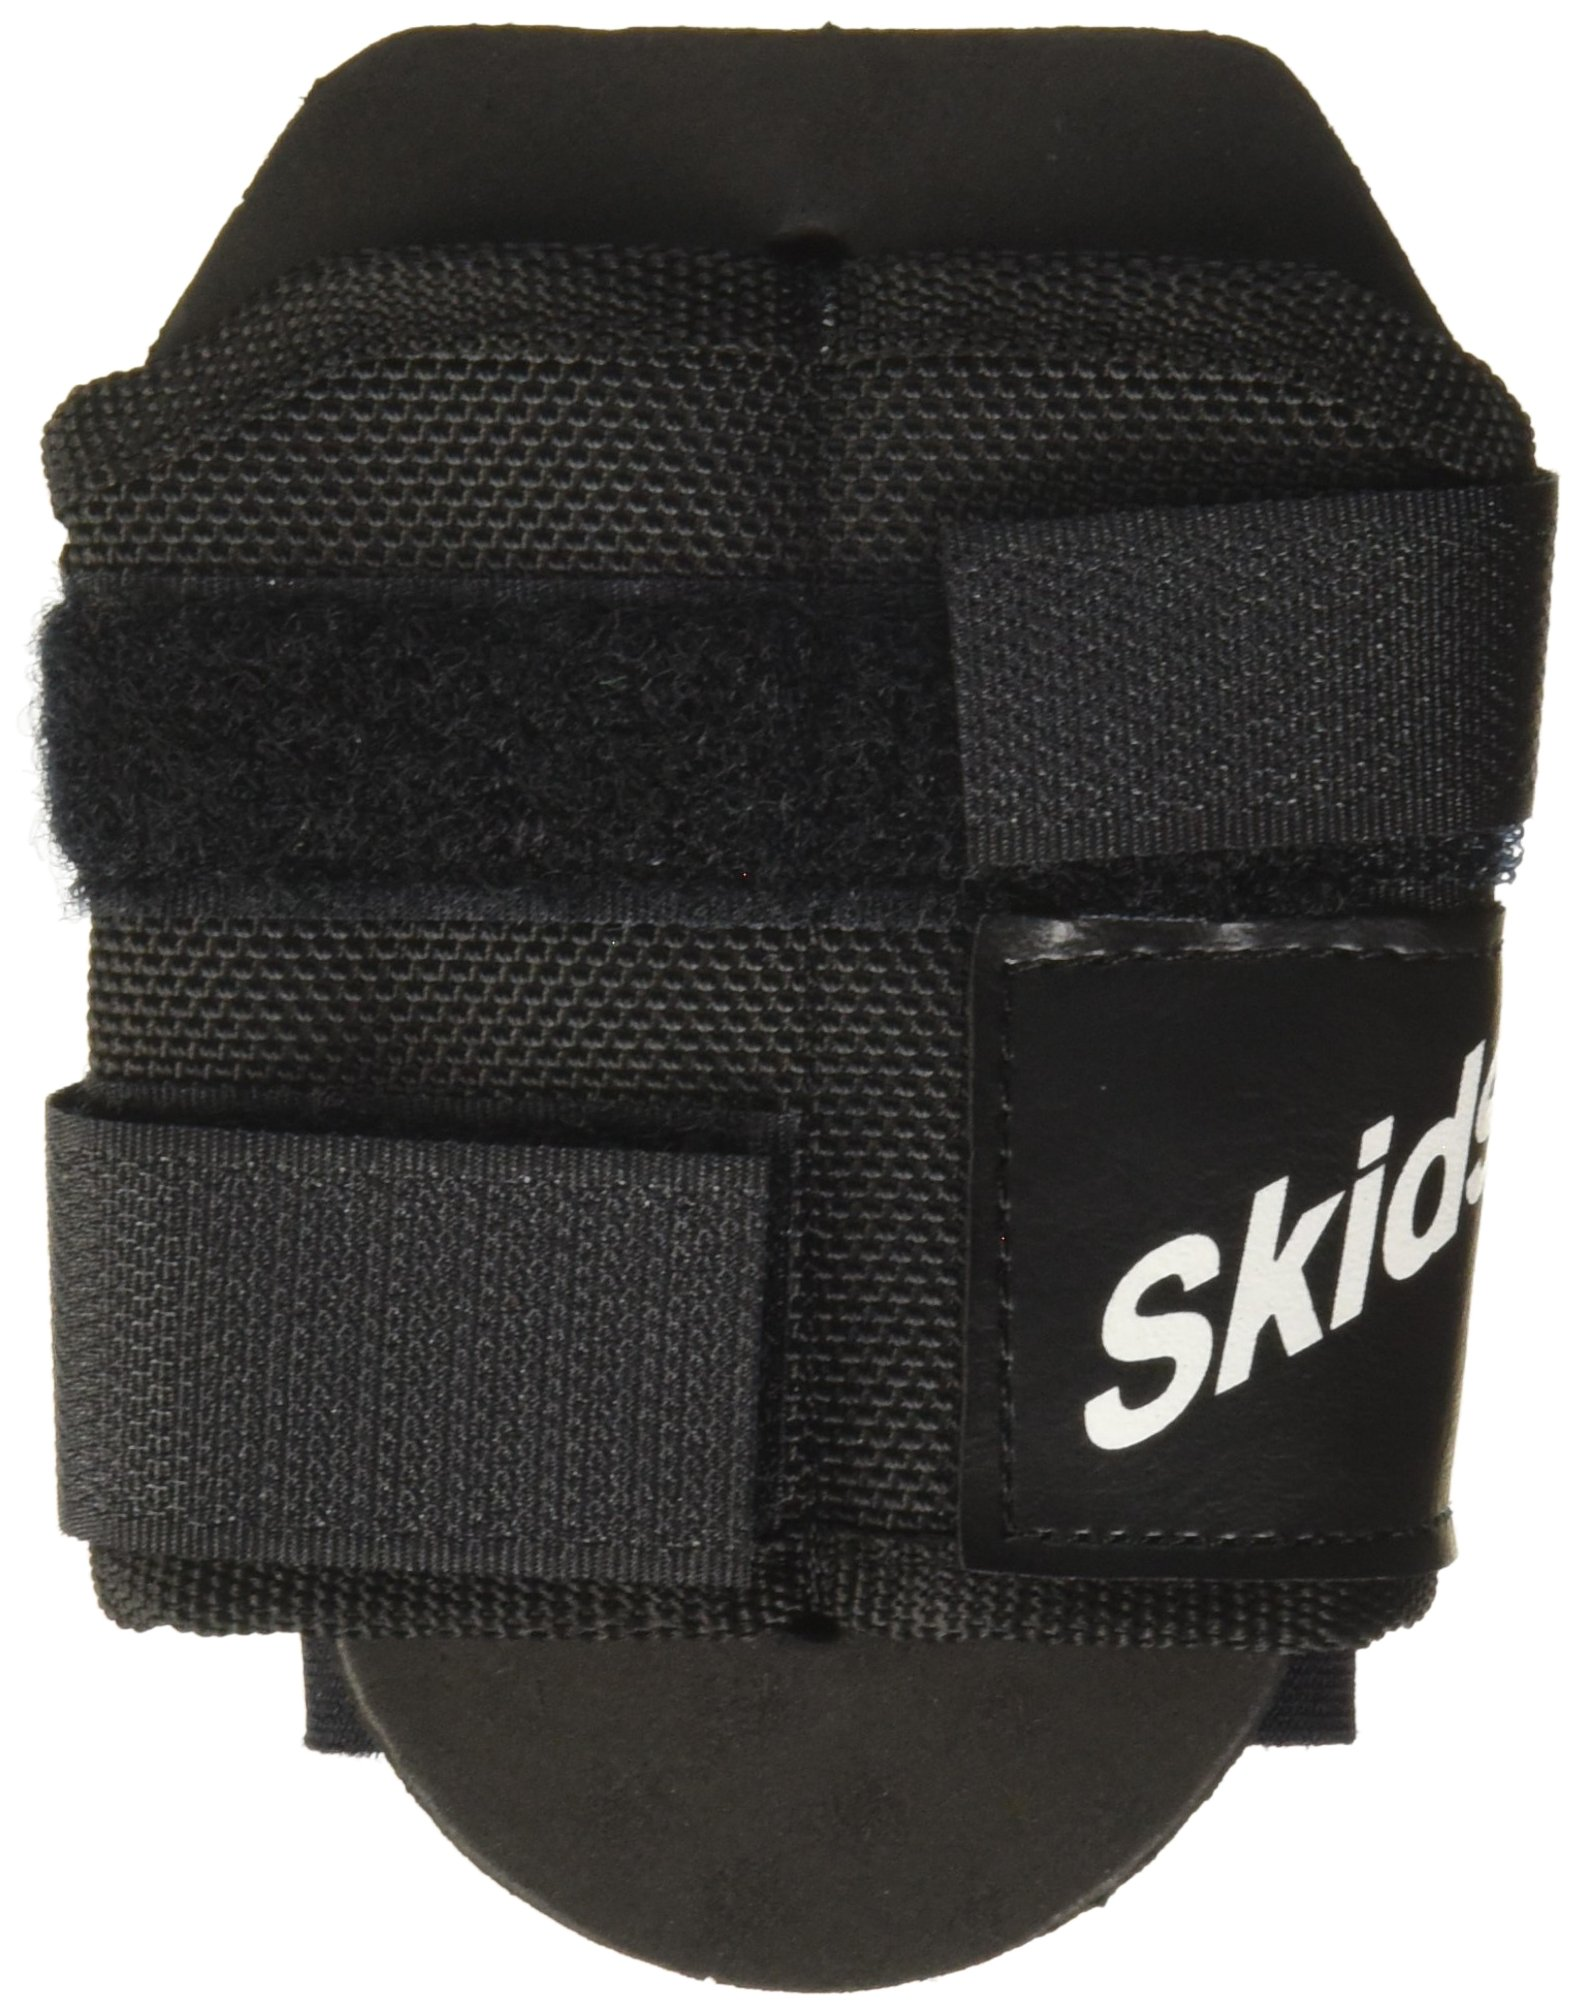 Skids Tandem Sport Wrist Wrap Supports - Small